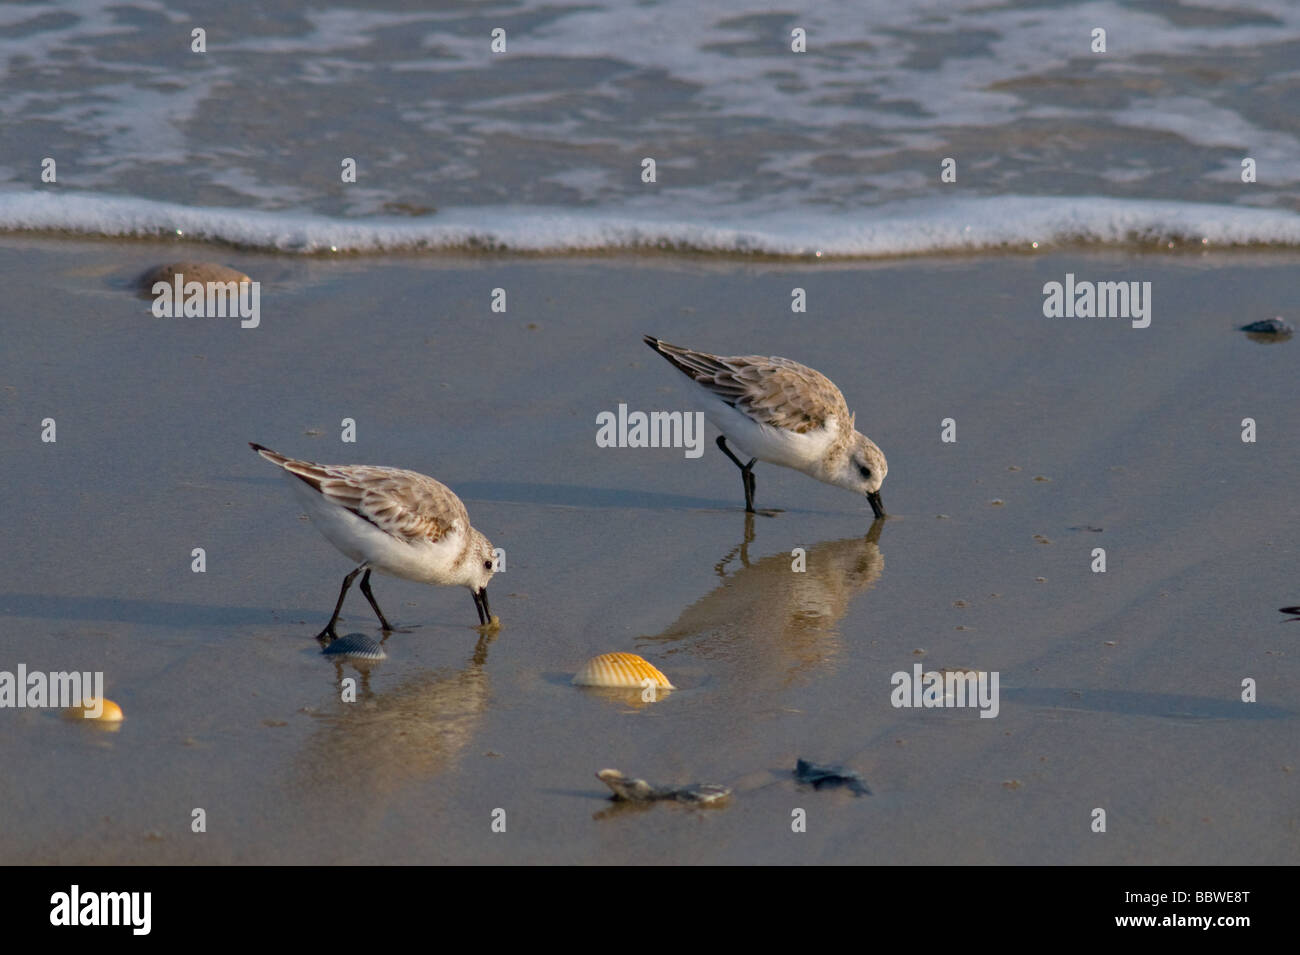 Shore birds in North Carolina - Stock Image